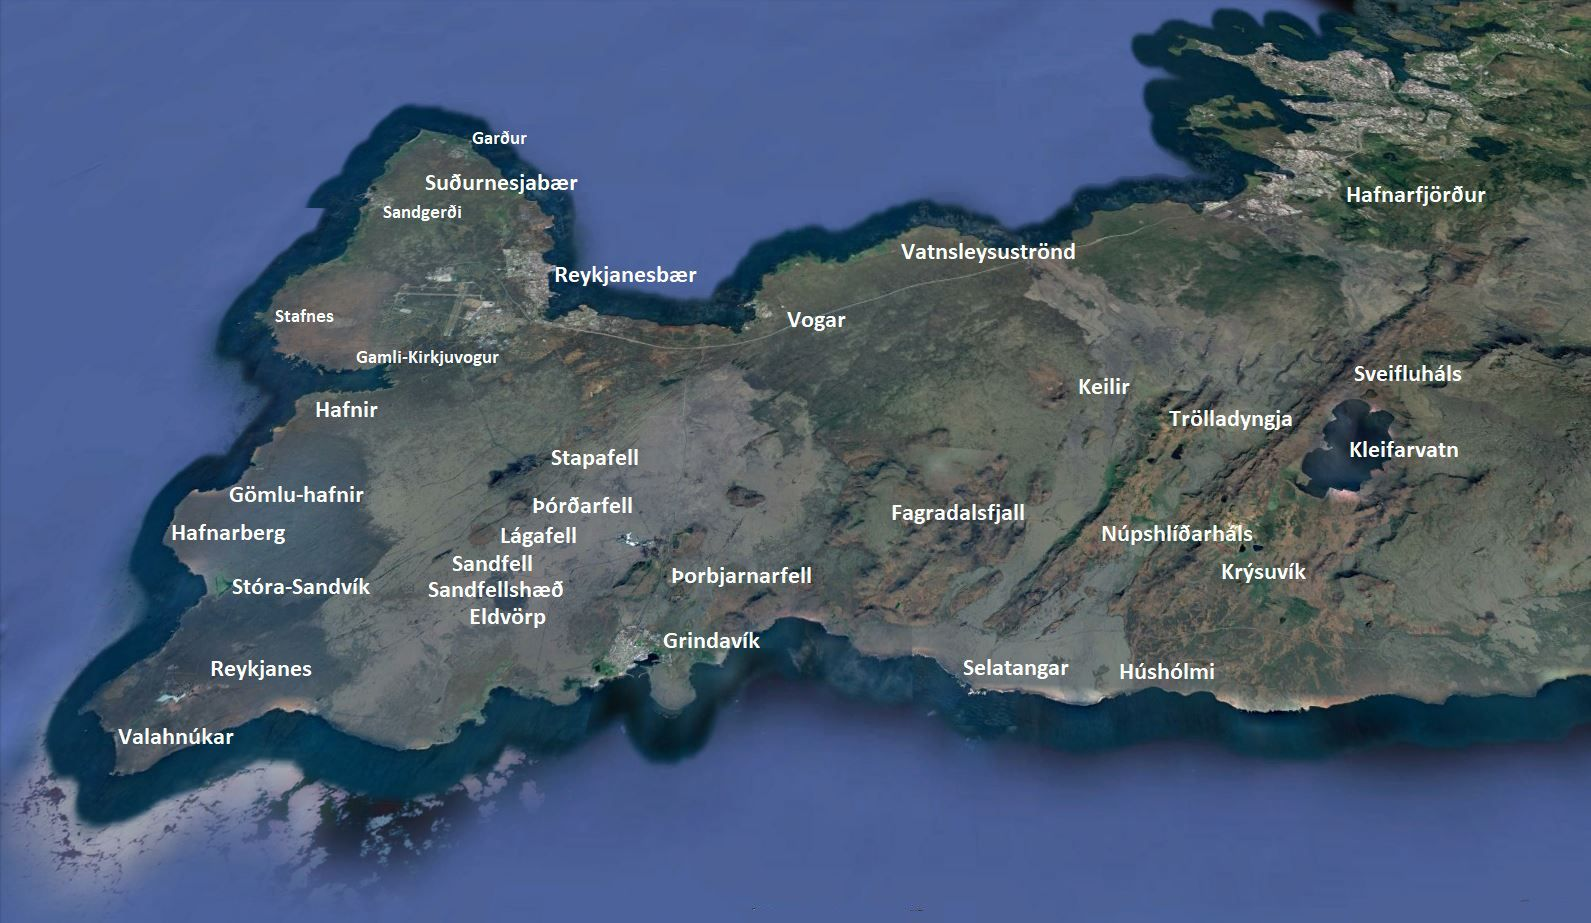 Volcanic systems of the Reykjanes Peninsula